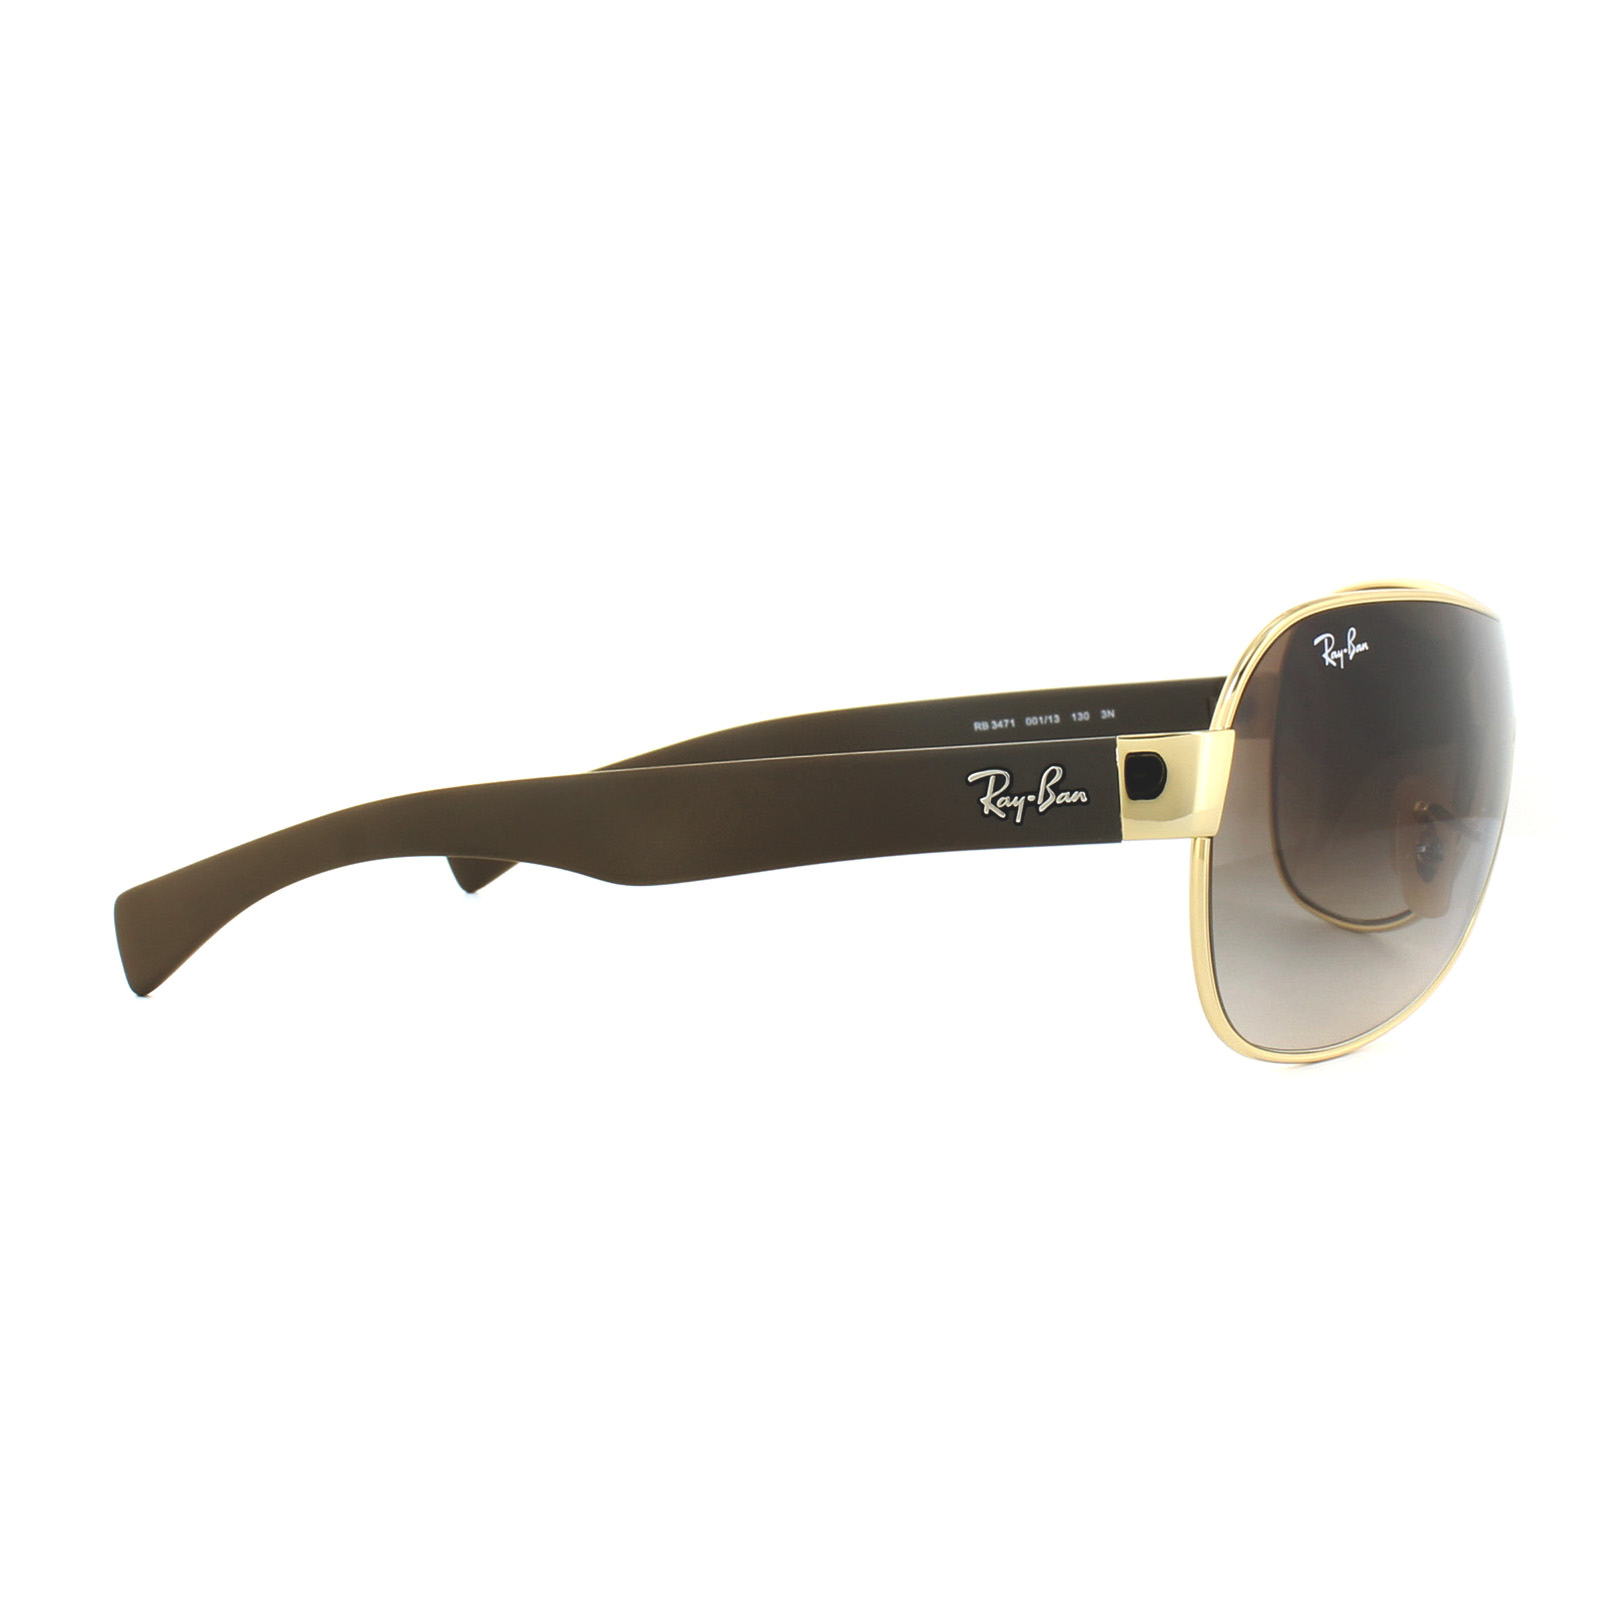 f25da973d5e ... ireland sentinel ray ban sunglasses 3471 001 13 gold brown gradient  d4a9a 1cfeb